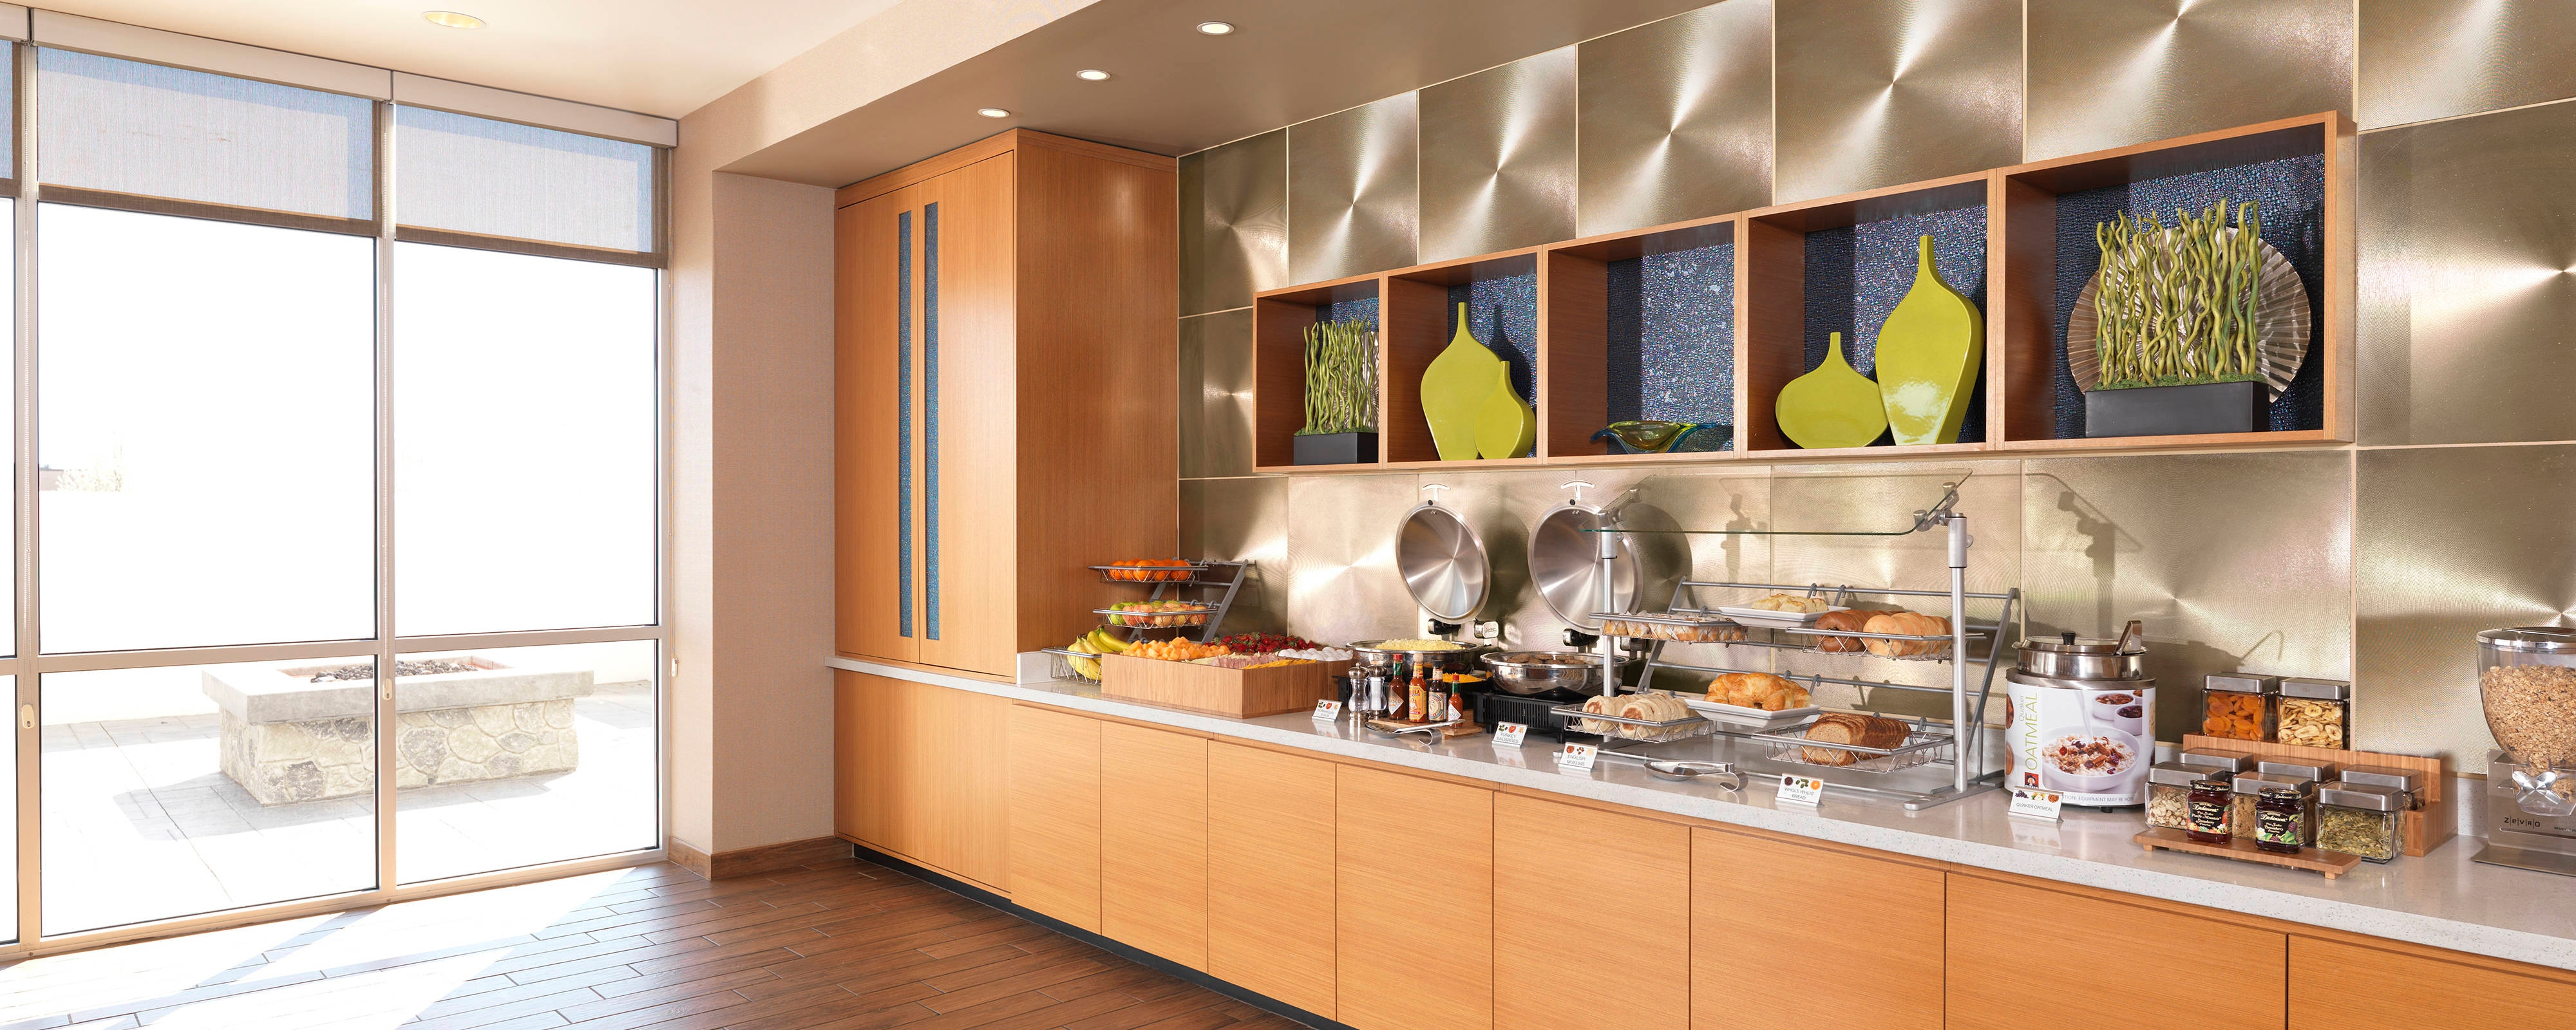 Hotels near Columbia Mall MD - SpringHill Suites by Marriott